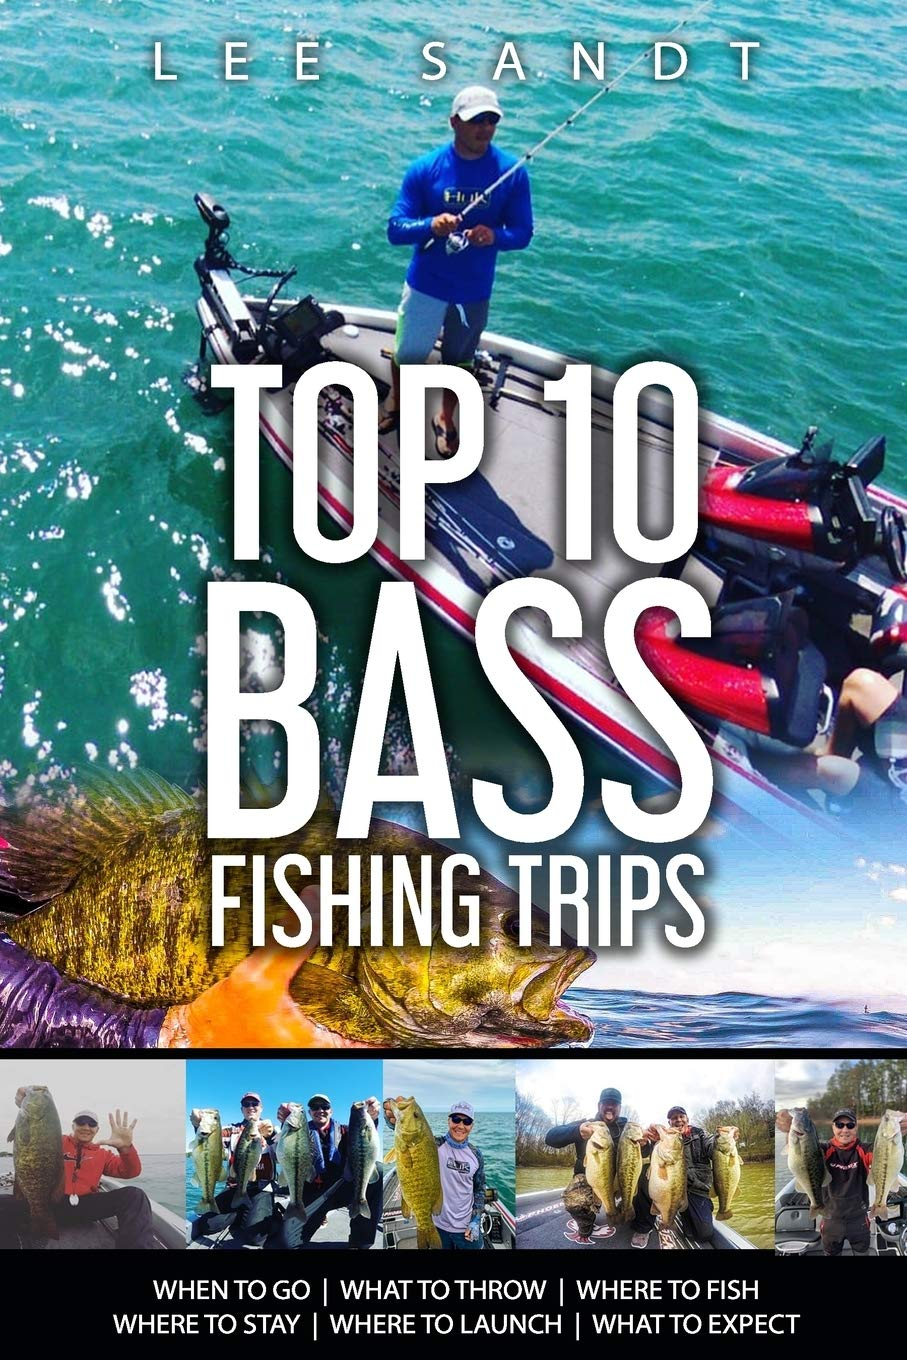 Top 10 Bass Fishing Trips: When To Go / What To Throw / Where To Fish / Where To Stay / Where To Launch / What To Expect